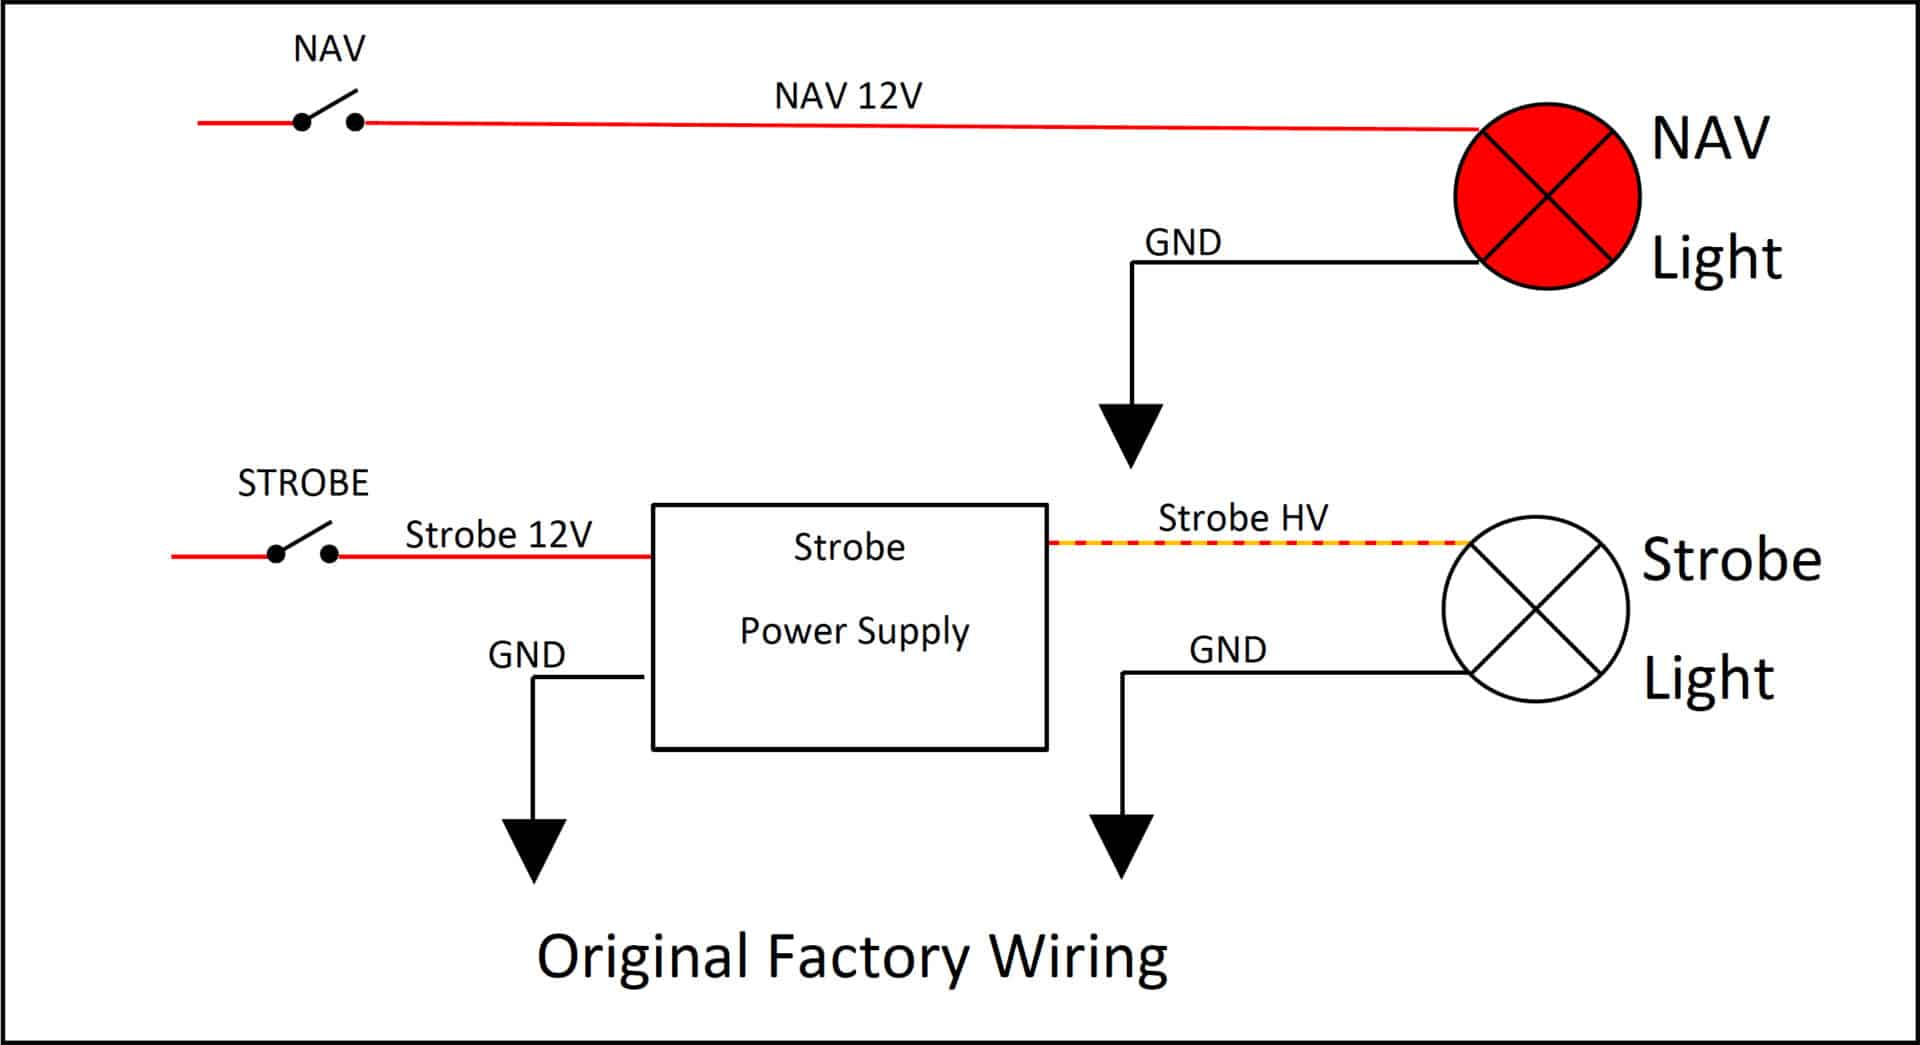 hight resolution of strobe wiring diagram u2013 uavionixstrobe wiring diagram 1